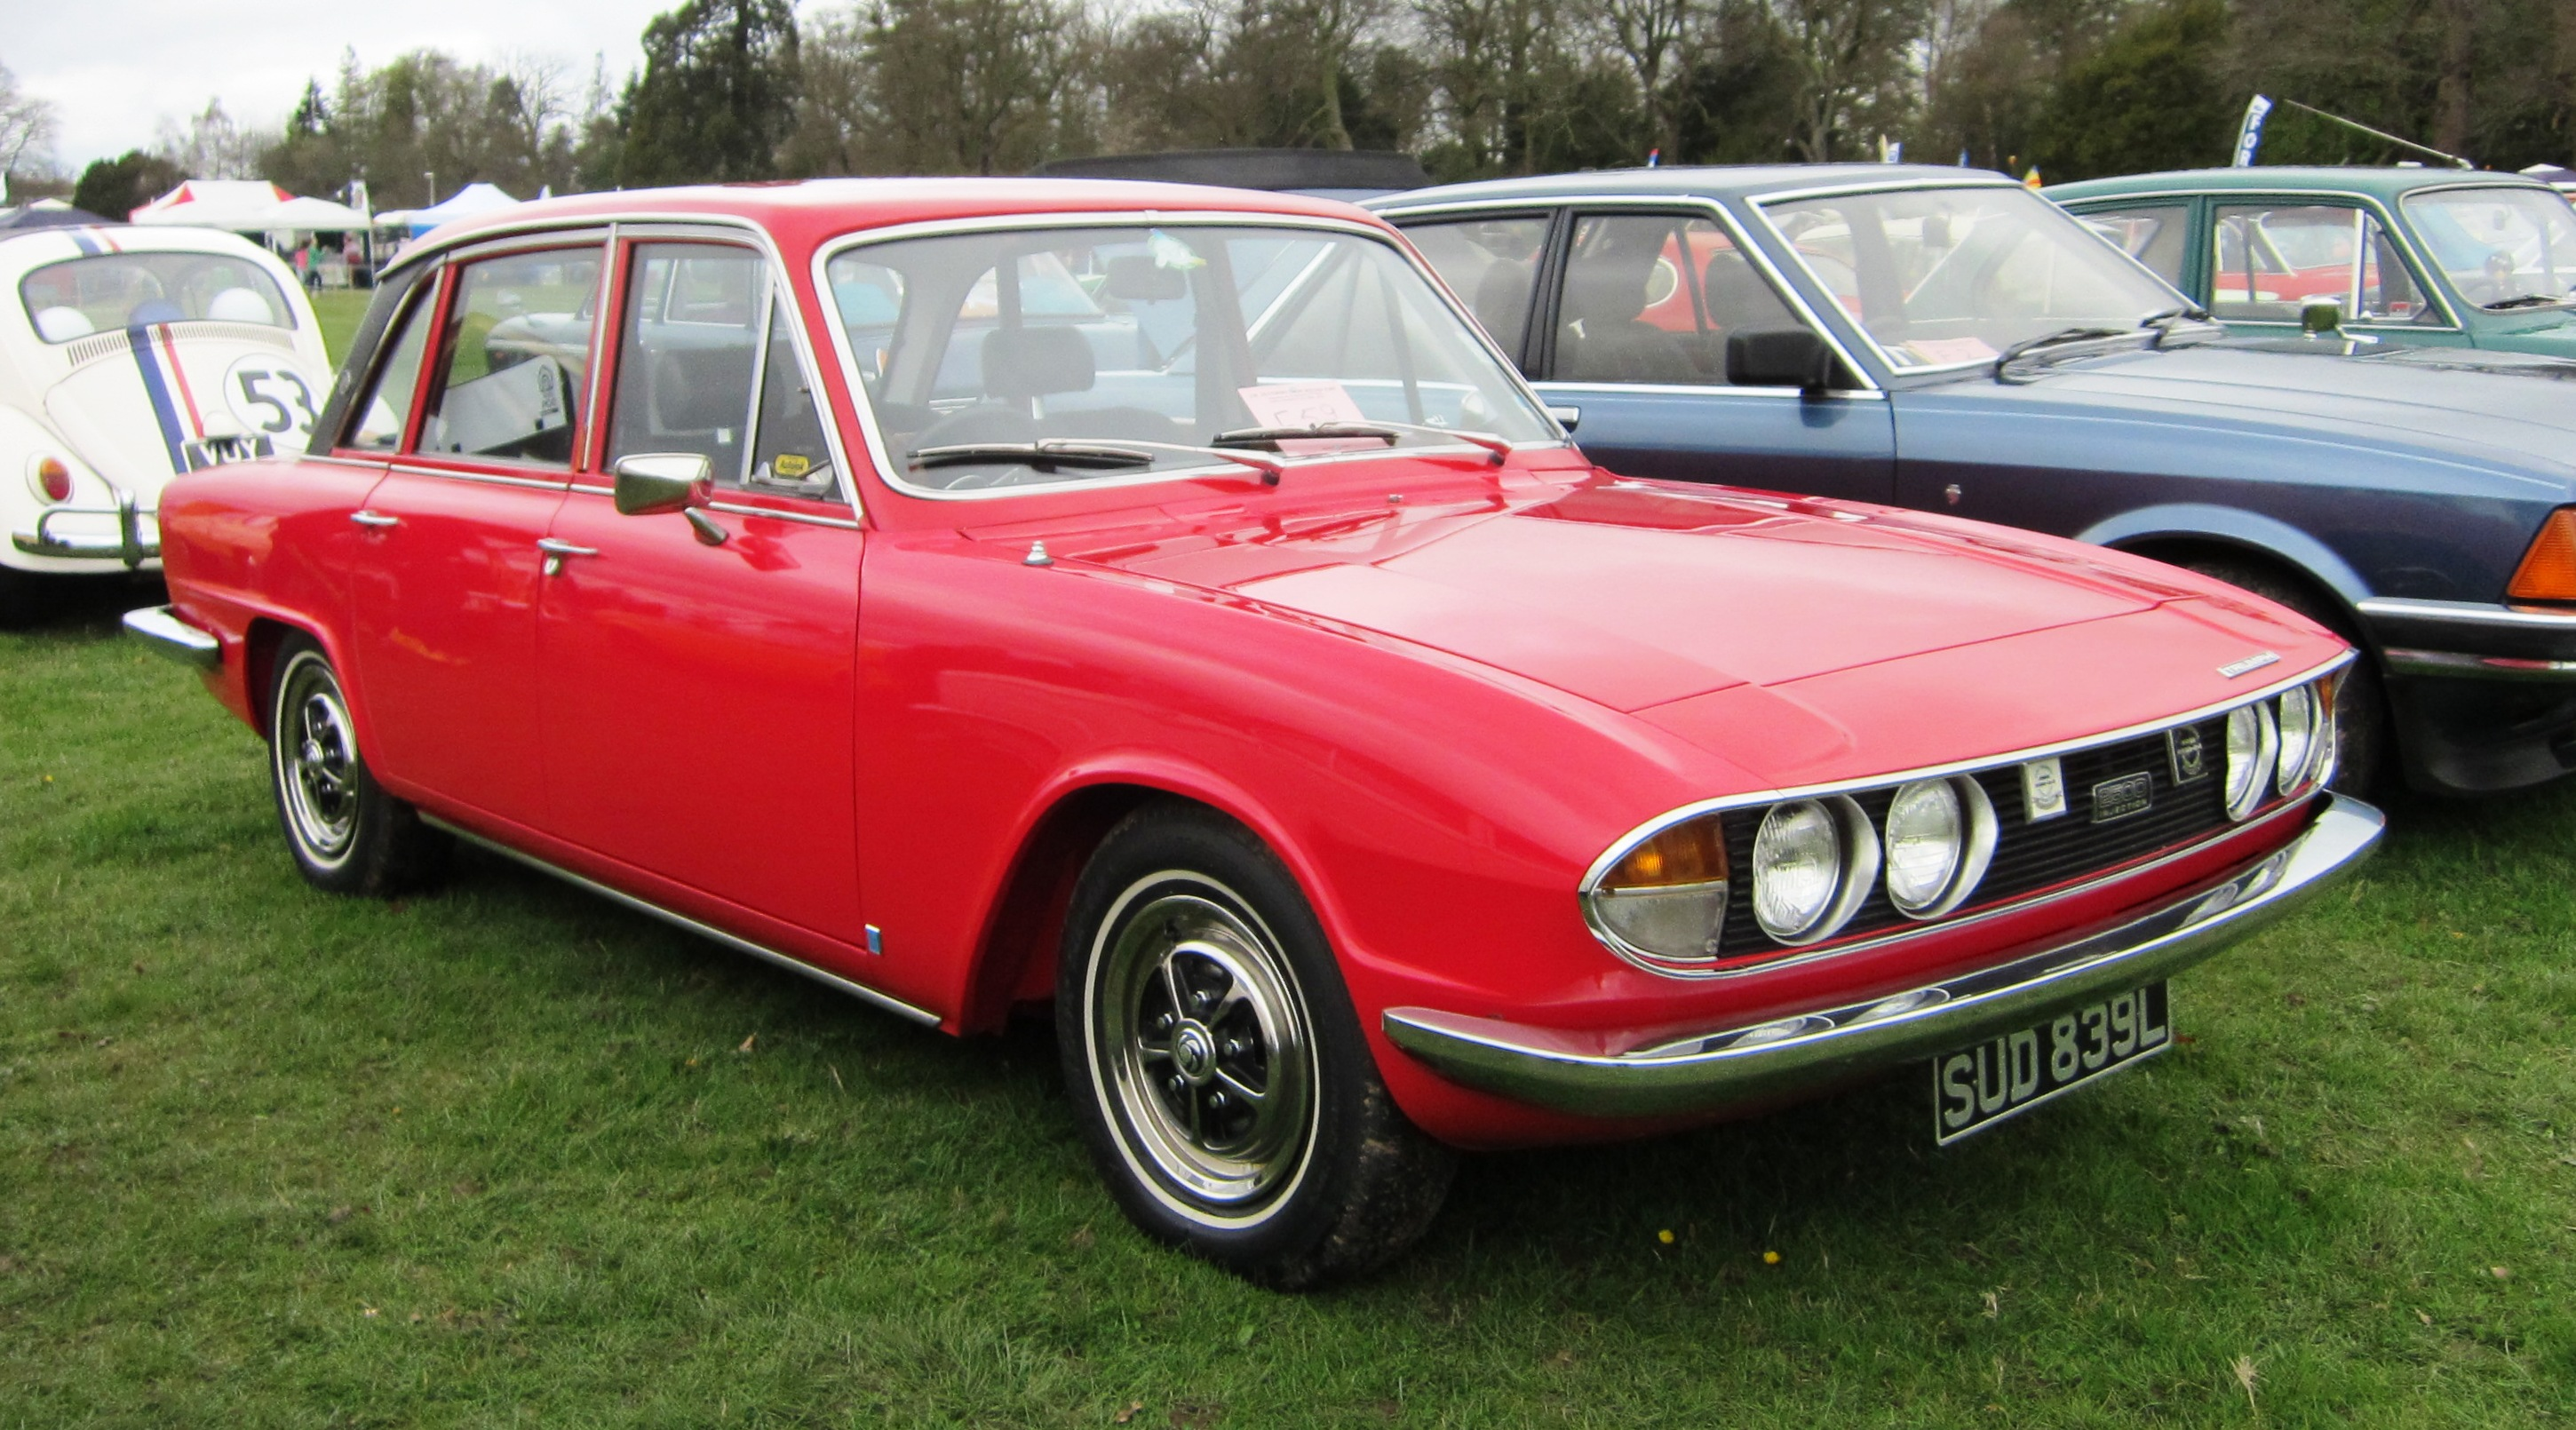 File:Triumph 2500 PI Mk 2 first reg May 1973 2498cc.JPG - Wikimedia ...